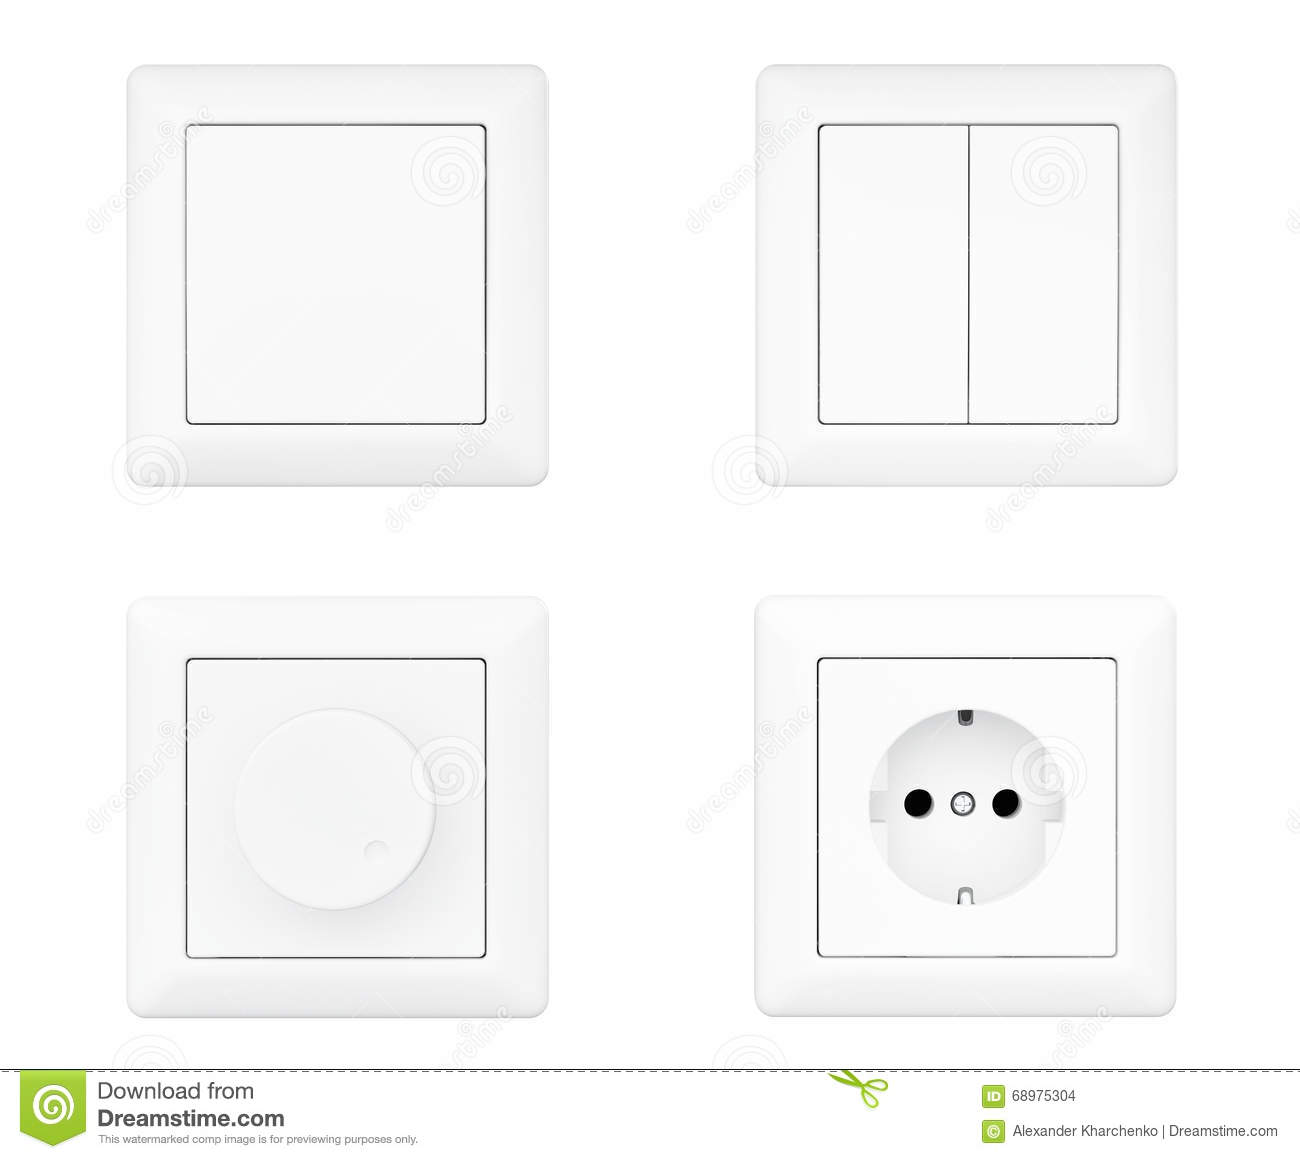 dimmer cartoons  illustrations  u0026 vector stock images